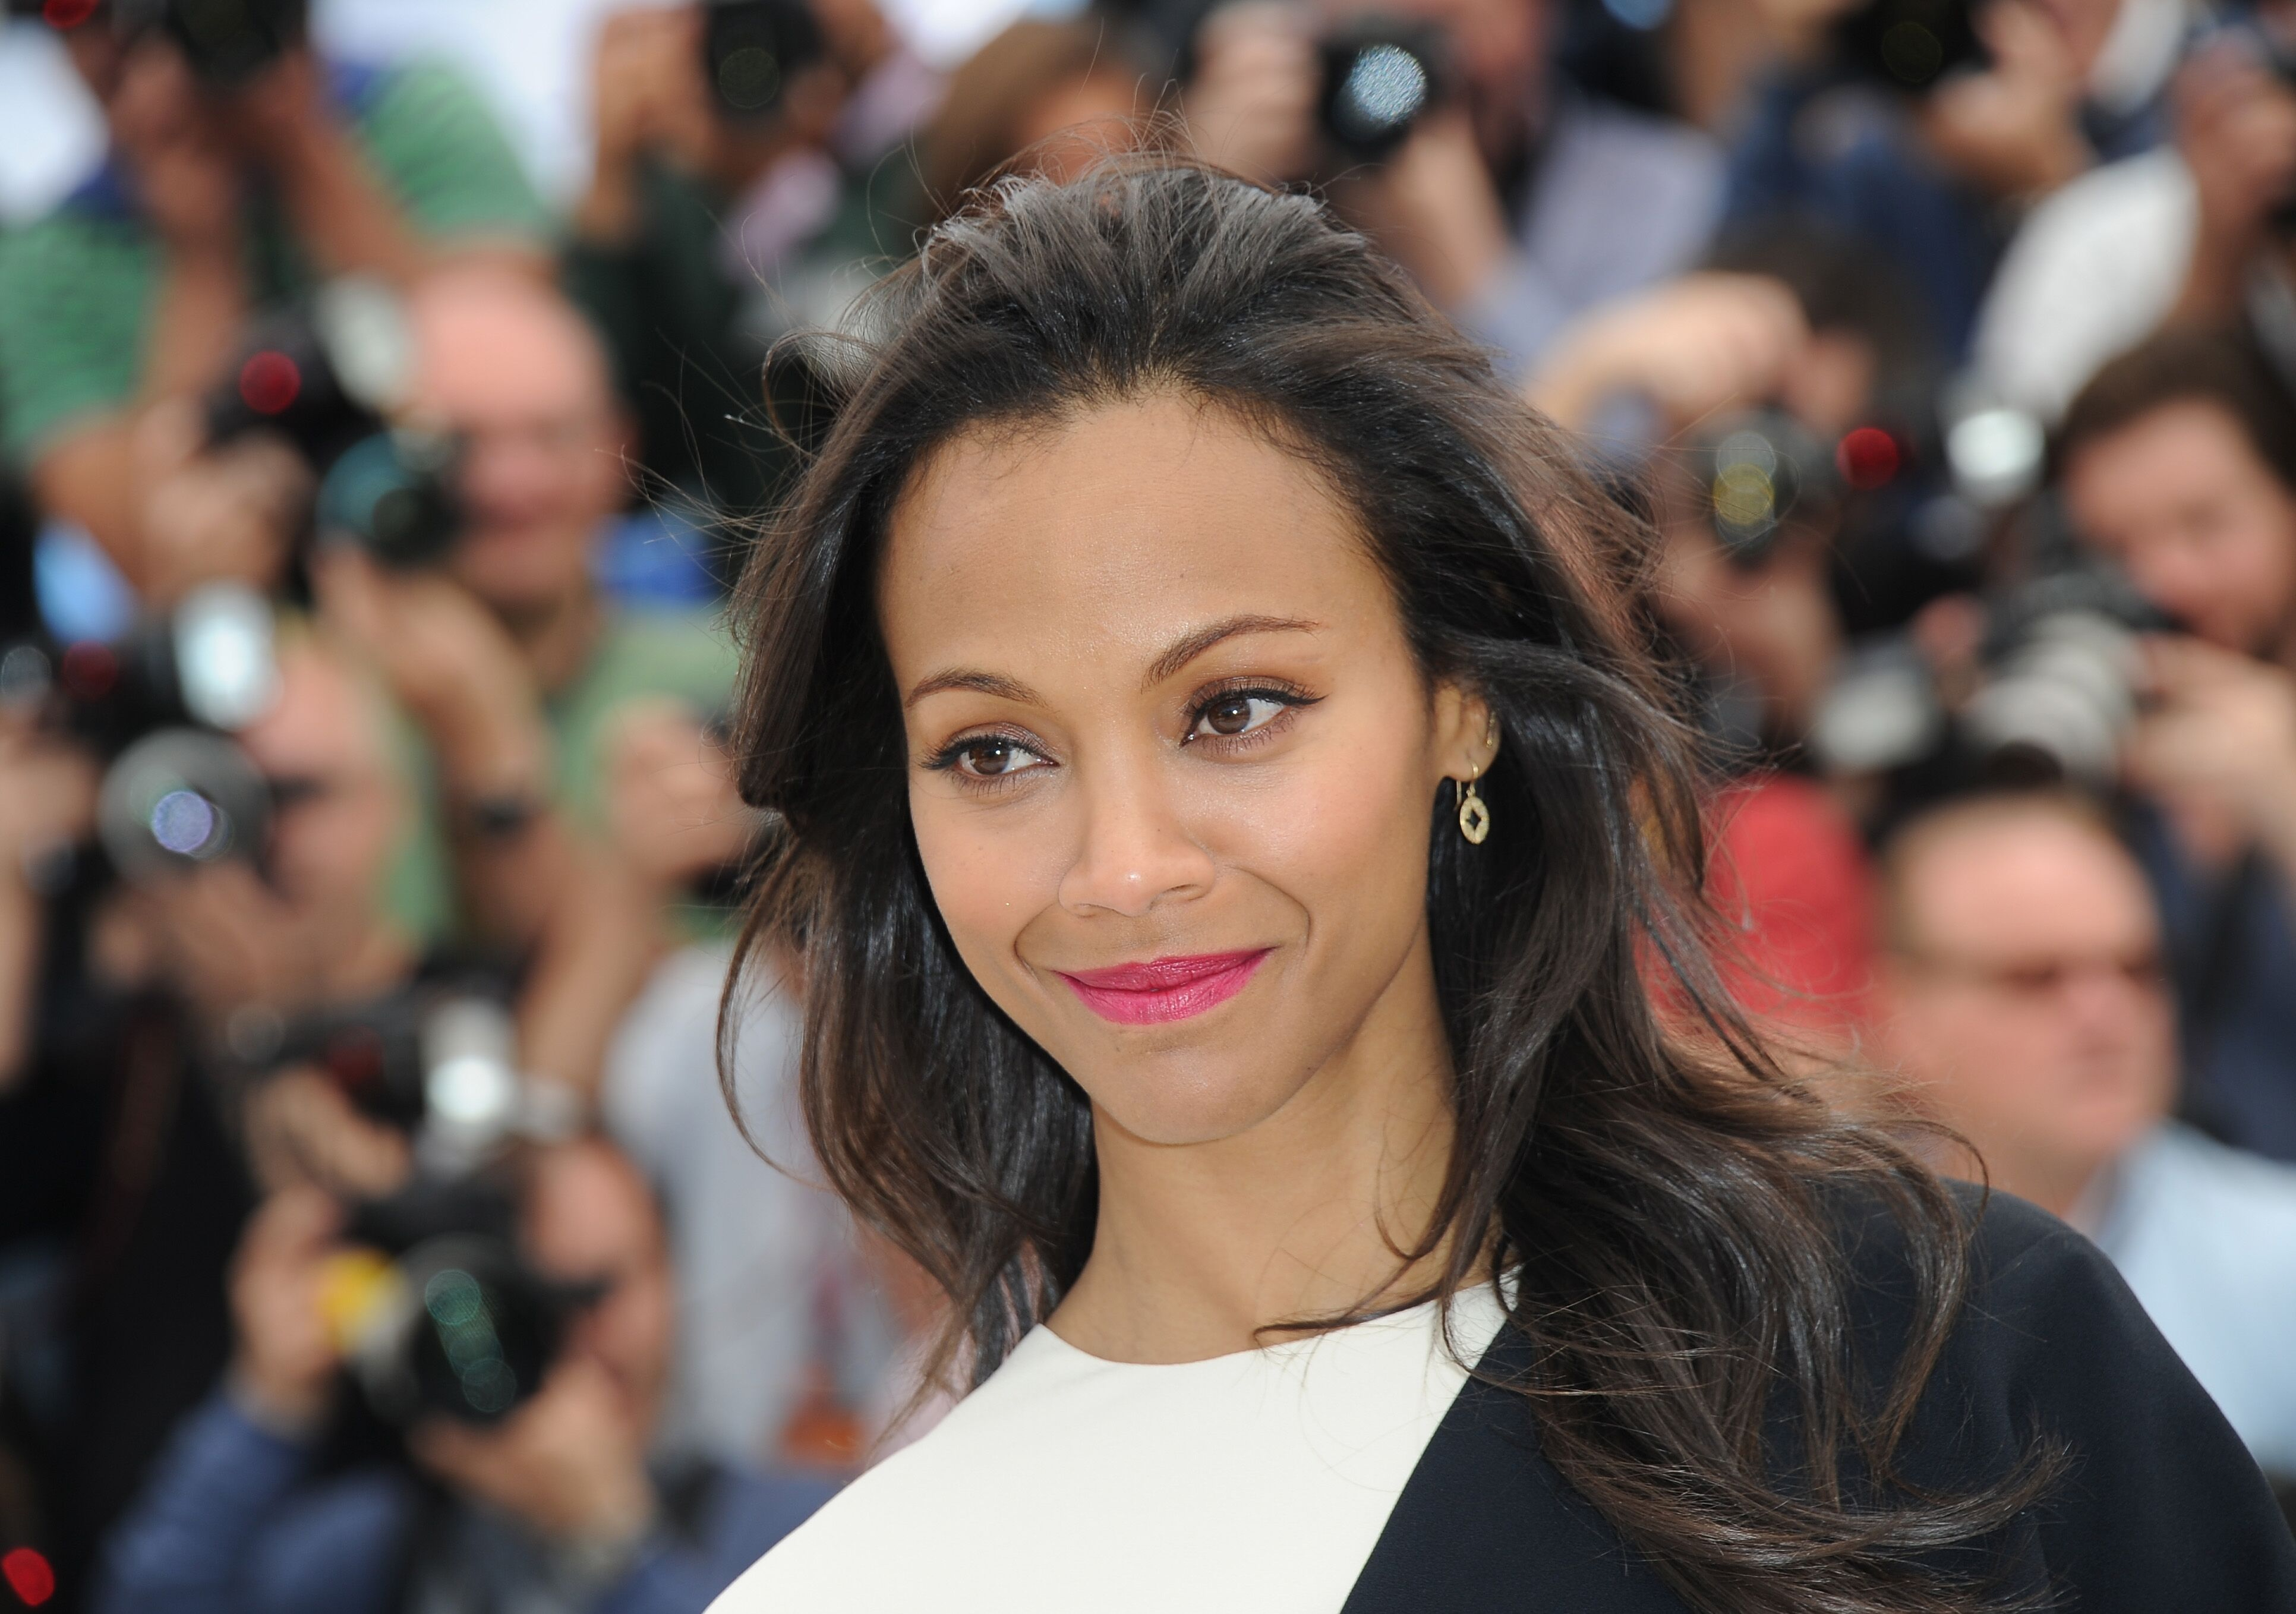 Actress Zoe Saldana attends the photocall for 'Blood Ties' at The 66th Annual Cannes Film Festival on May 20, 2013 in Cannes, France. | Photo: Getty Images